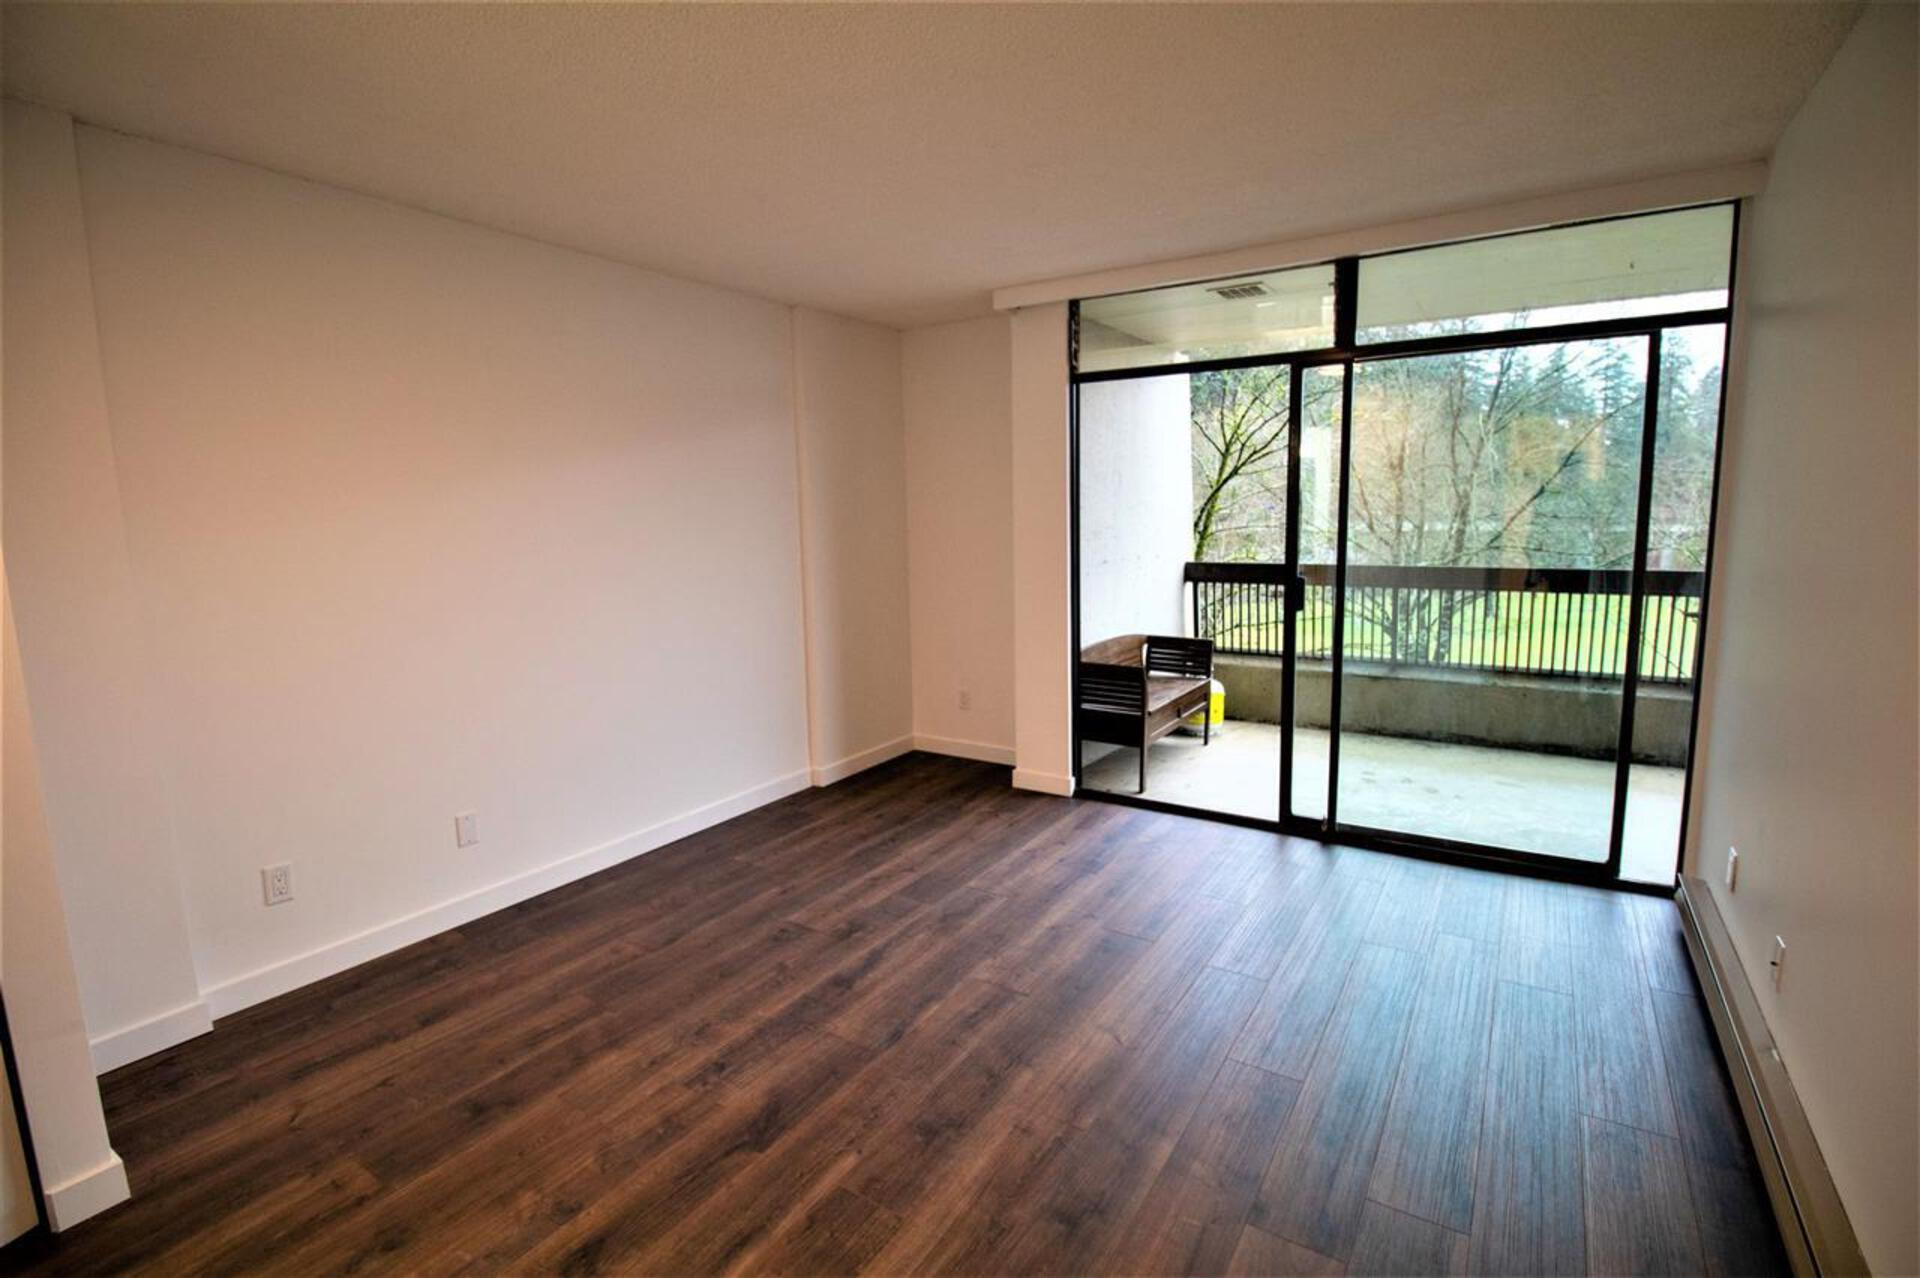 5932-patterson-avenue-metrotown-burnaby-south-11 at 408 - 5932 Patterson Avenue, Metrotown, Burnaby South